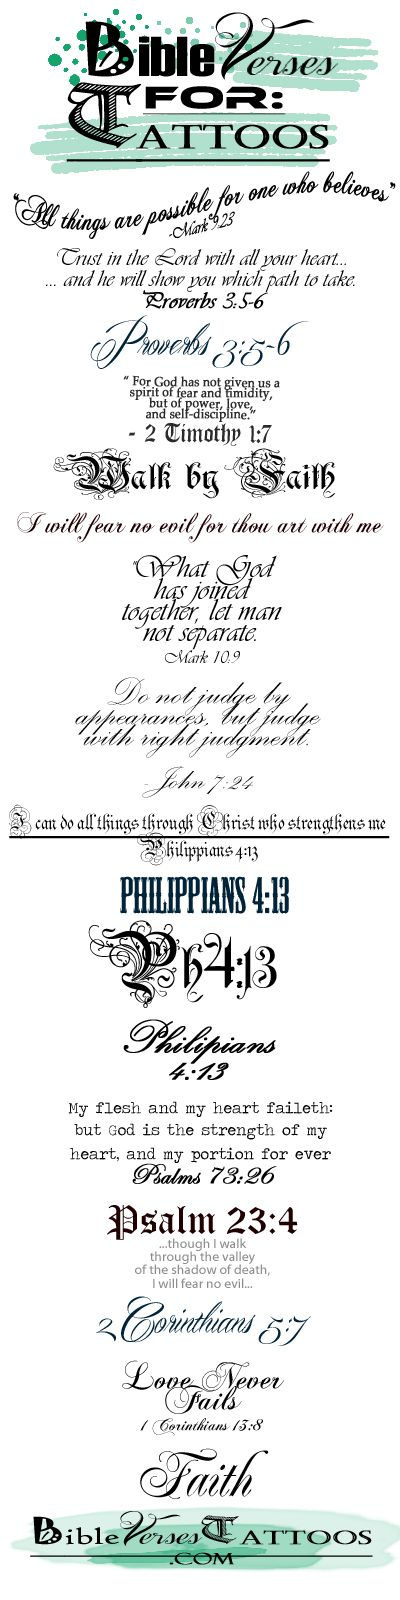 BiBLE VERSE TATTOOS - Download (Repin) the Best Bible Verses for Tattoos from: www.BibleVersesTattoos.com and Bring them to Your tattoo artist... it's the Easiest way to explain what type of tattoo you wanna get.. #bibleversetattoos #bibleversestattoos #bibletattoos